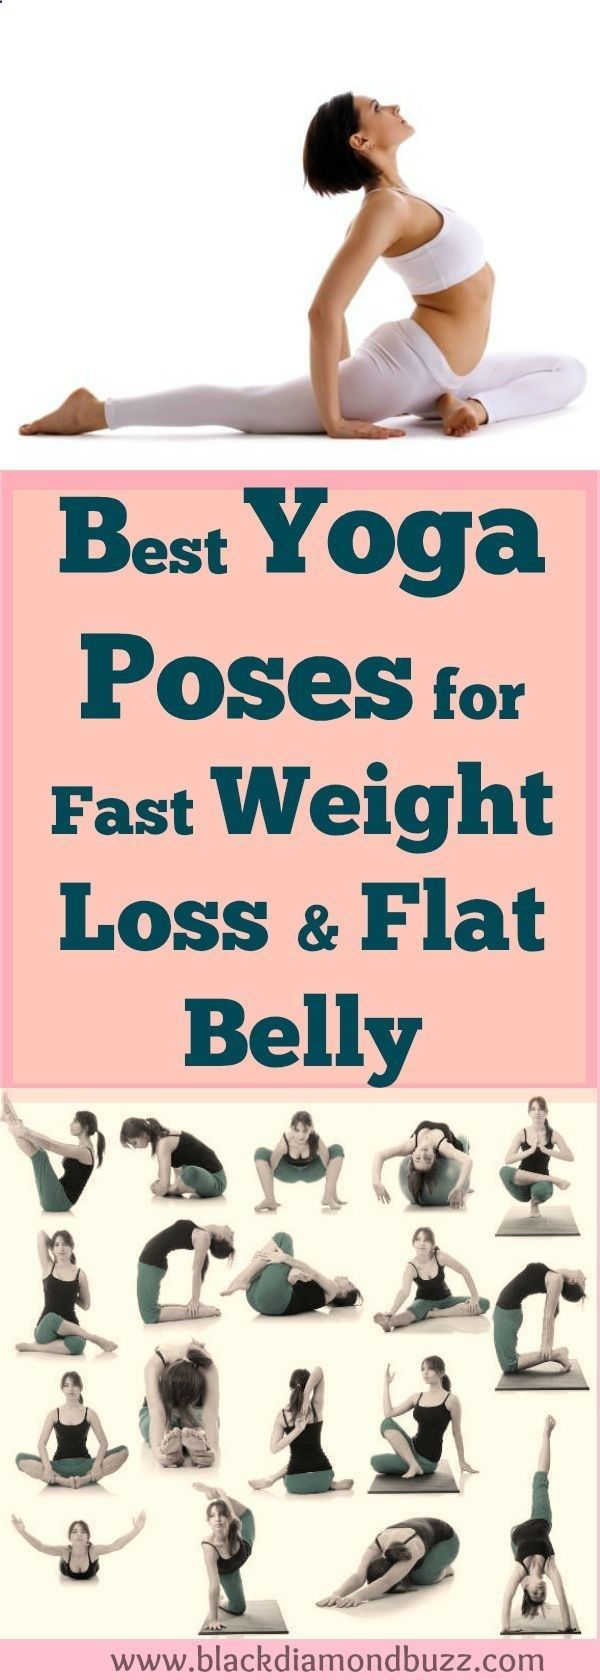 Fat Fast Shrinking Signal Diet-Recipes Yoga Poses How To Lose Weight Fast? If you want to lose weight badly and achieve that your dream weight, you can naturally lose that stubborn fat in 10 days with this best yoga exercises for fast weight loss from belly , hips , thighs and legs. It also simple and easy for beginners yoga. Do This One Unusual 10-Minute Trick Before Work To Melt Away 15+ Pounds of Belly Fat